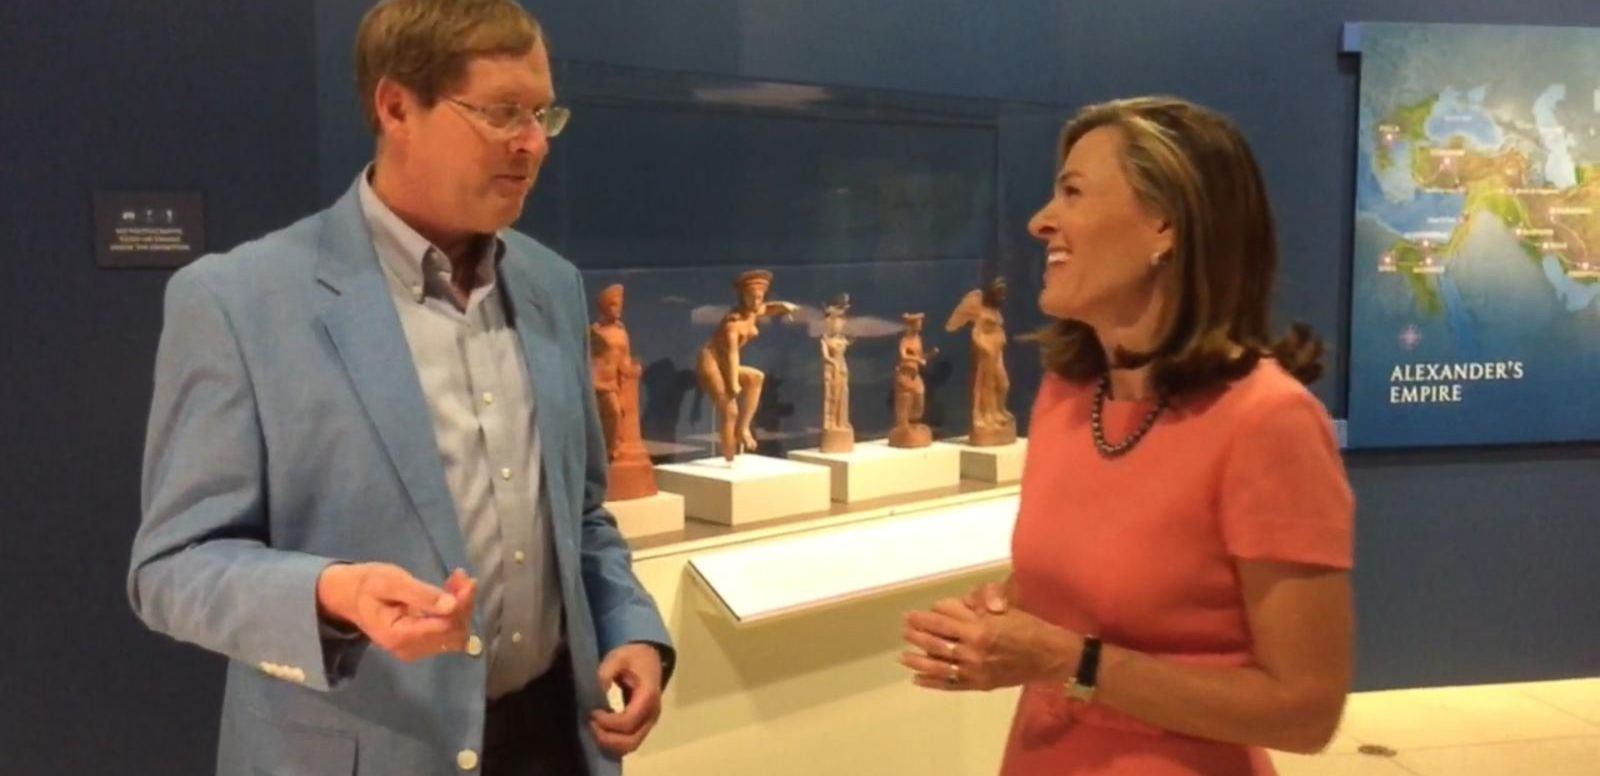 VIDEO: 'The Greeks' Artifact Display Stops in Washington D.C.